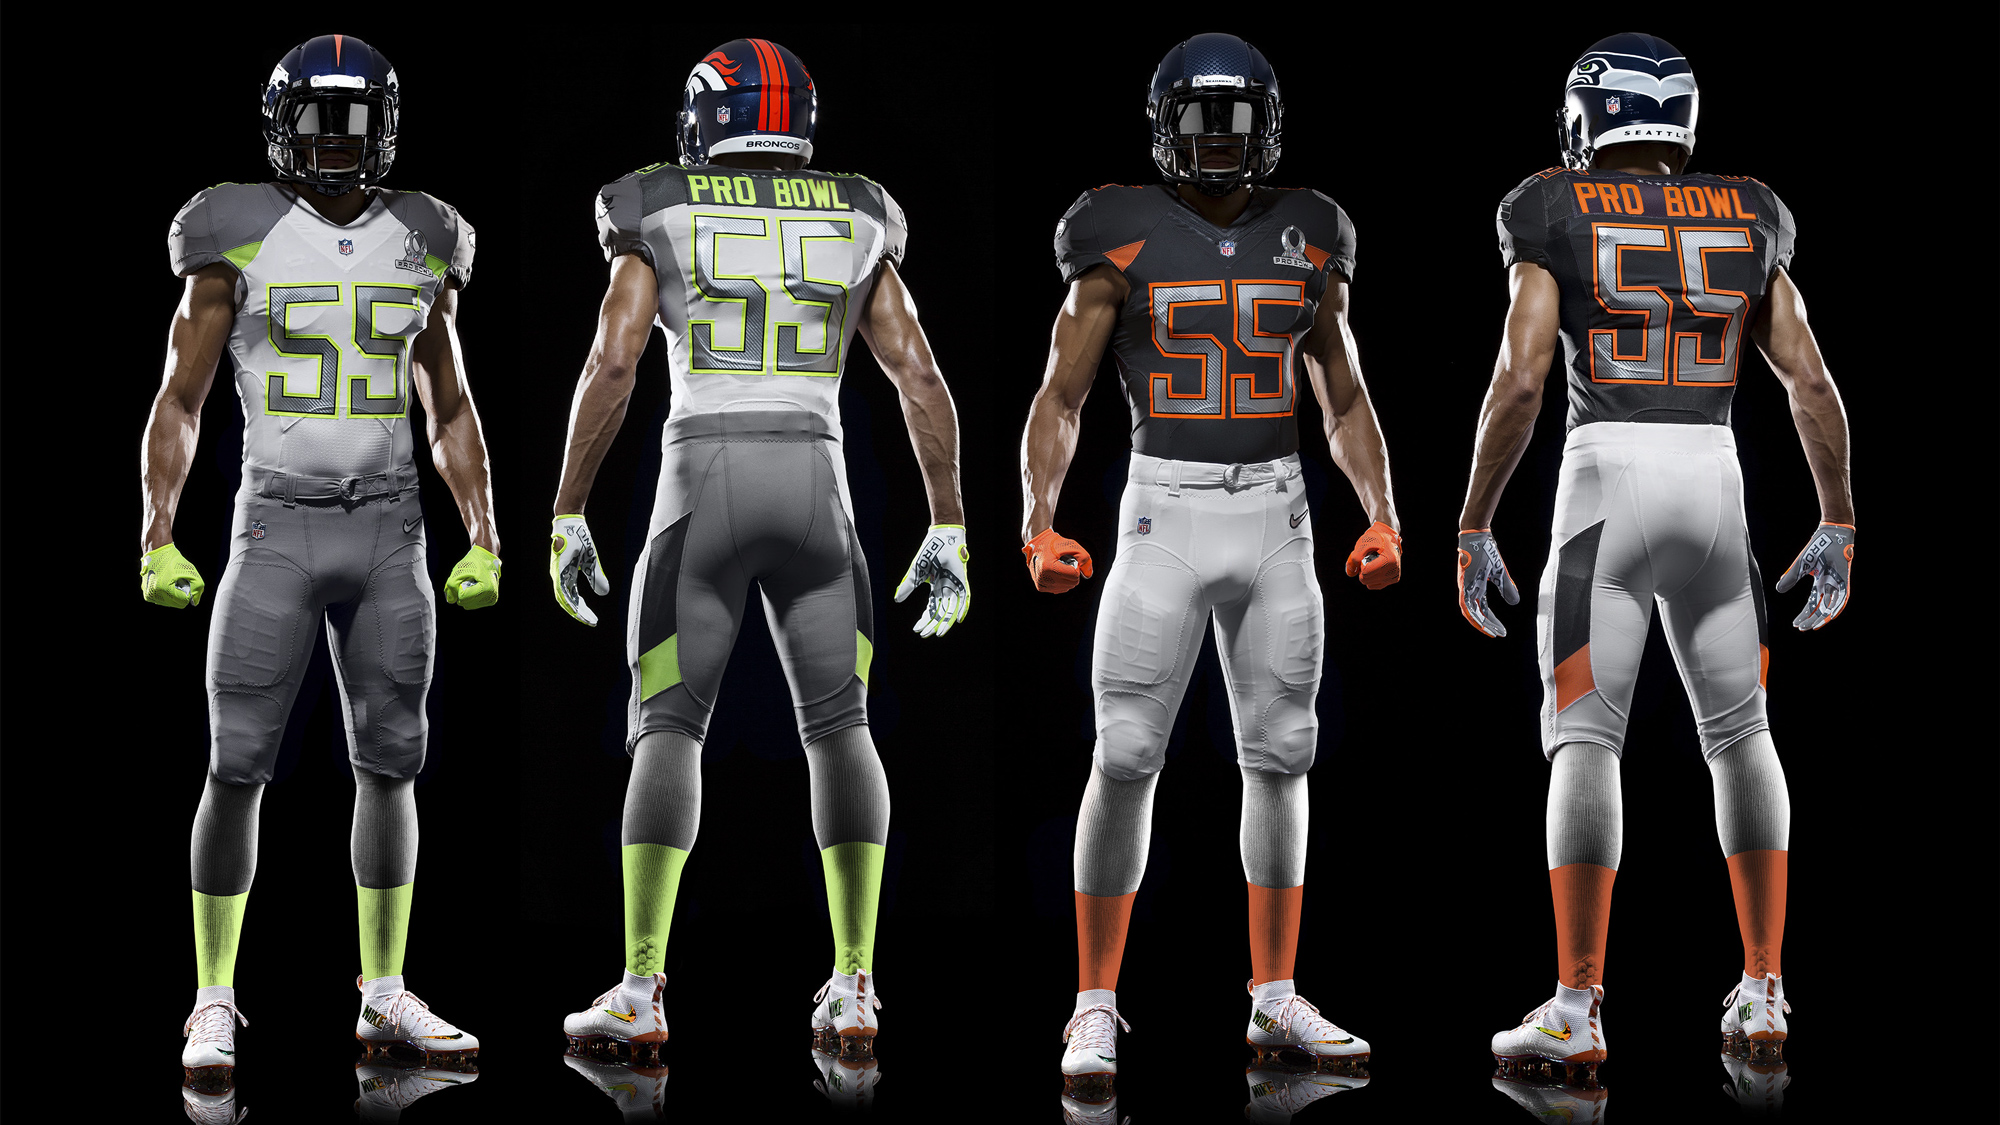 Eagles Black Jersey Green Pants >> Nike NFL Pro Bowl Uniforms Bring Fantasy Football Format to Life - Nike News